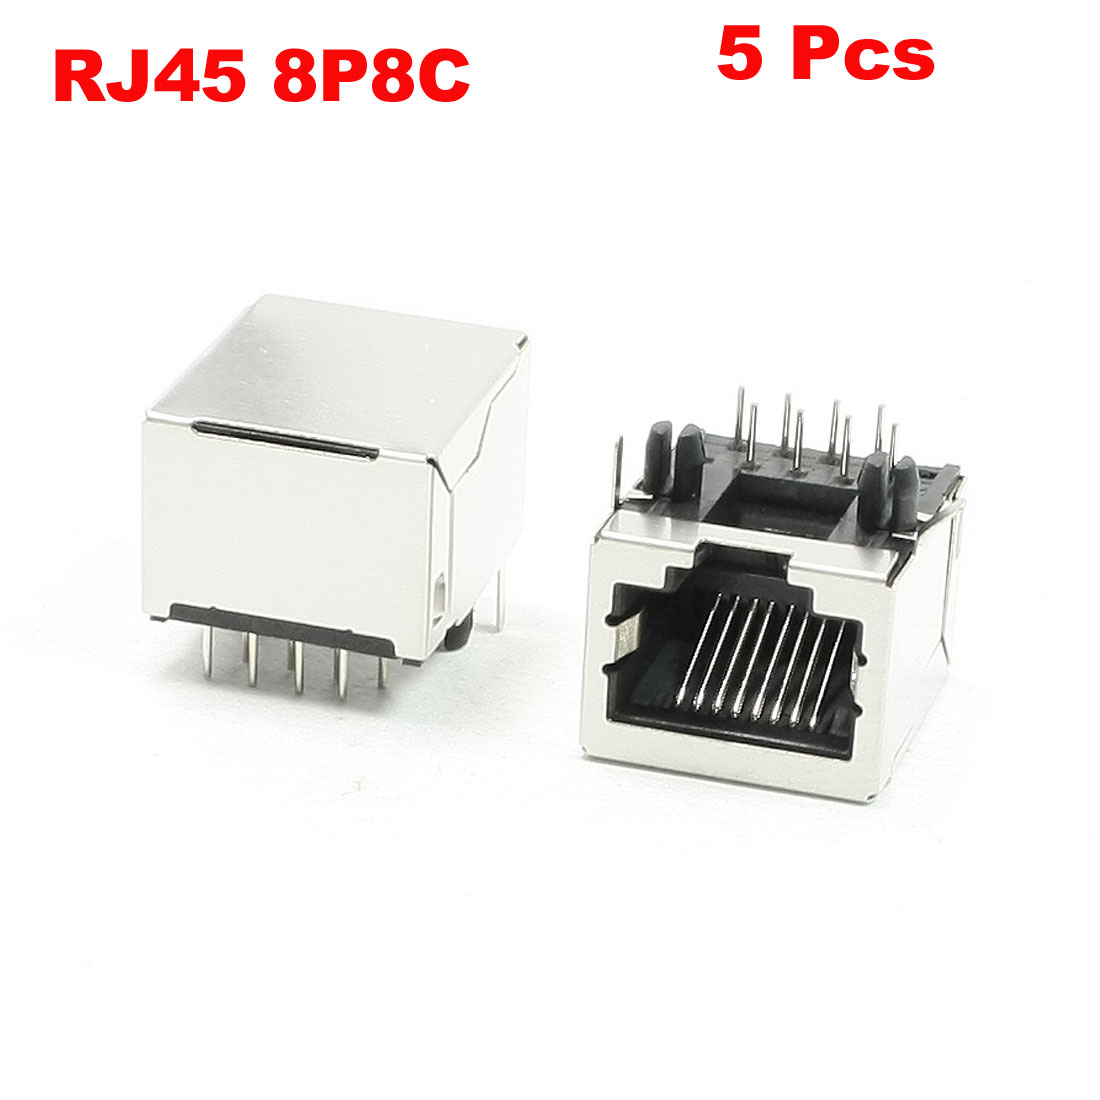 "5 Pcs 8P8C 8 Right Angle Pins RJ45 Jacks Repairing Sockets 0.7"" Length"